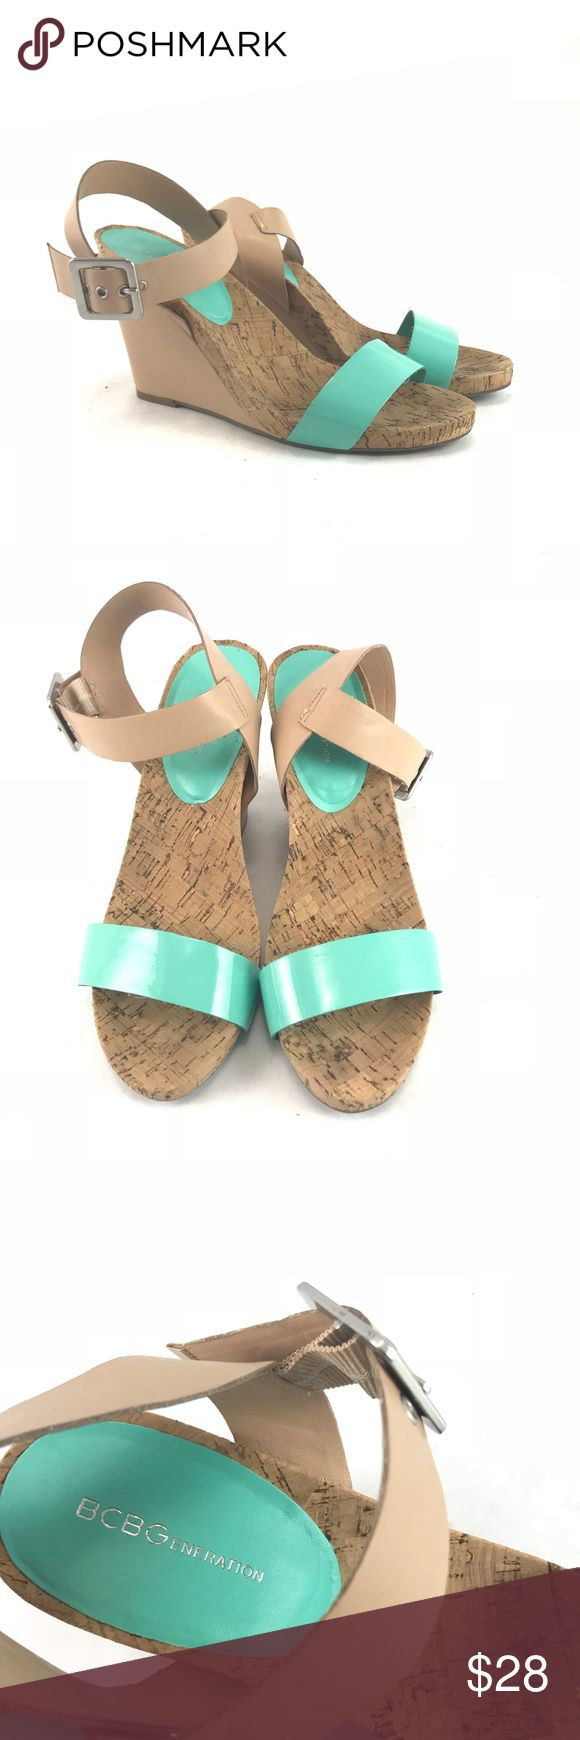 BCBG generation  teal and tan wedge sandals Pre-owned BCBG generation teal and tan wedge sandals.  Woman's sz 9.5.  See pictures for condition BCBGeneration Shoes Wedges